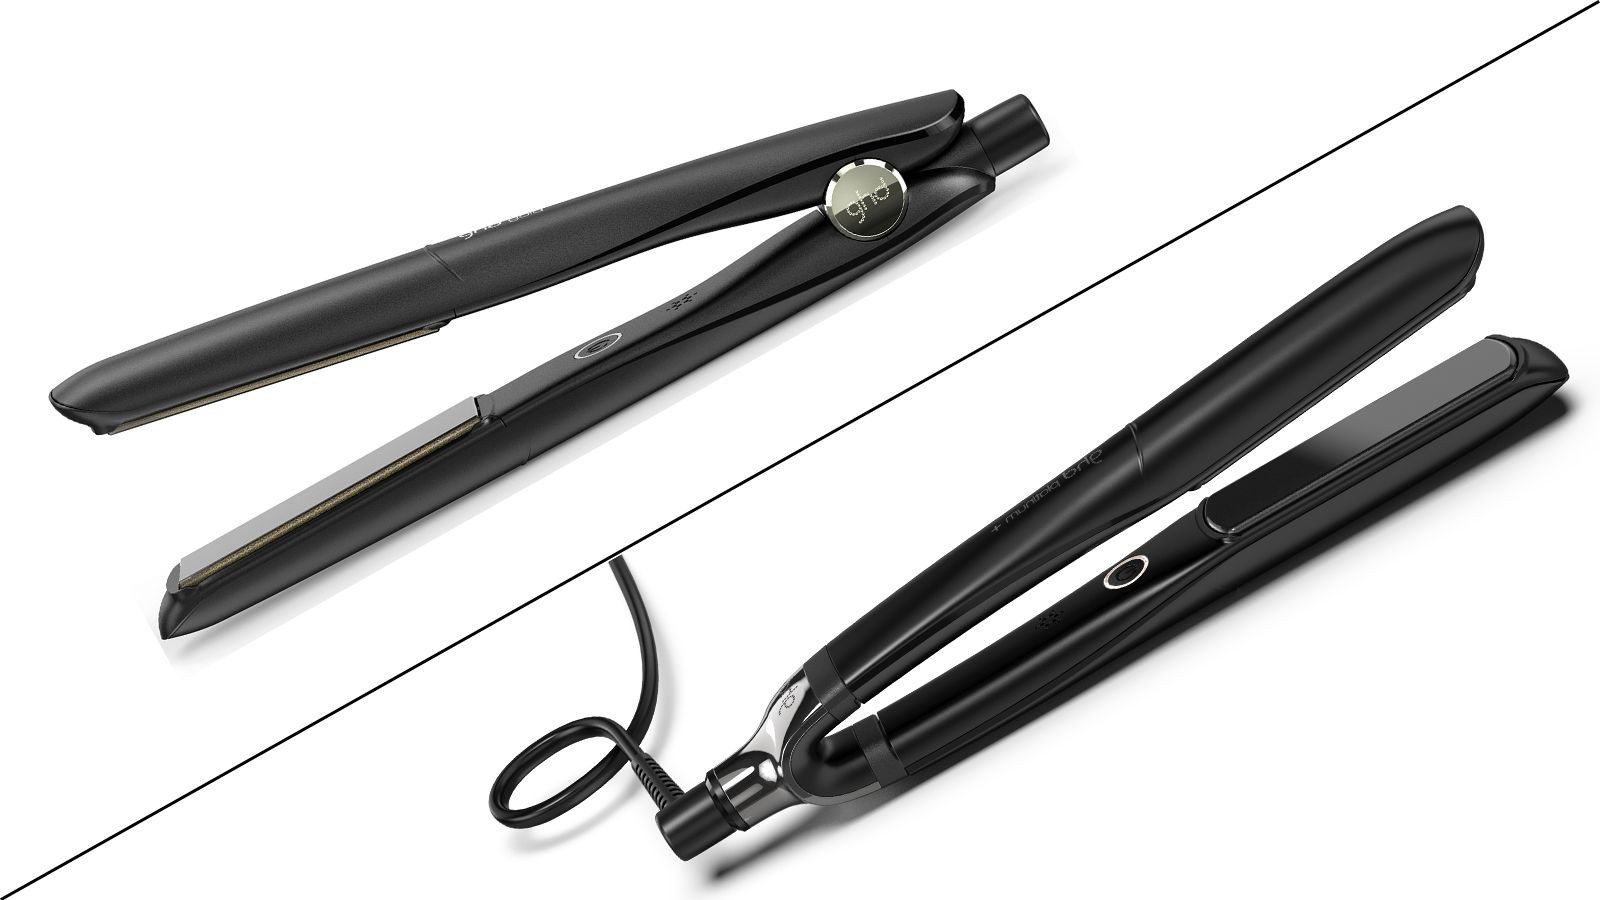 GHD Platinum+ vs GHD Gold: Is there a difference in the two renowned stylers?